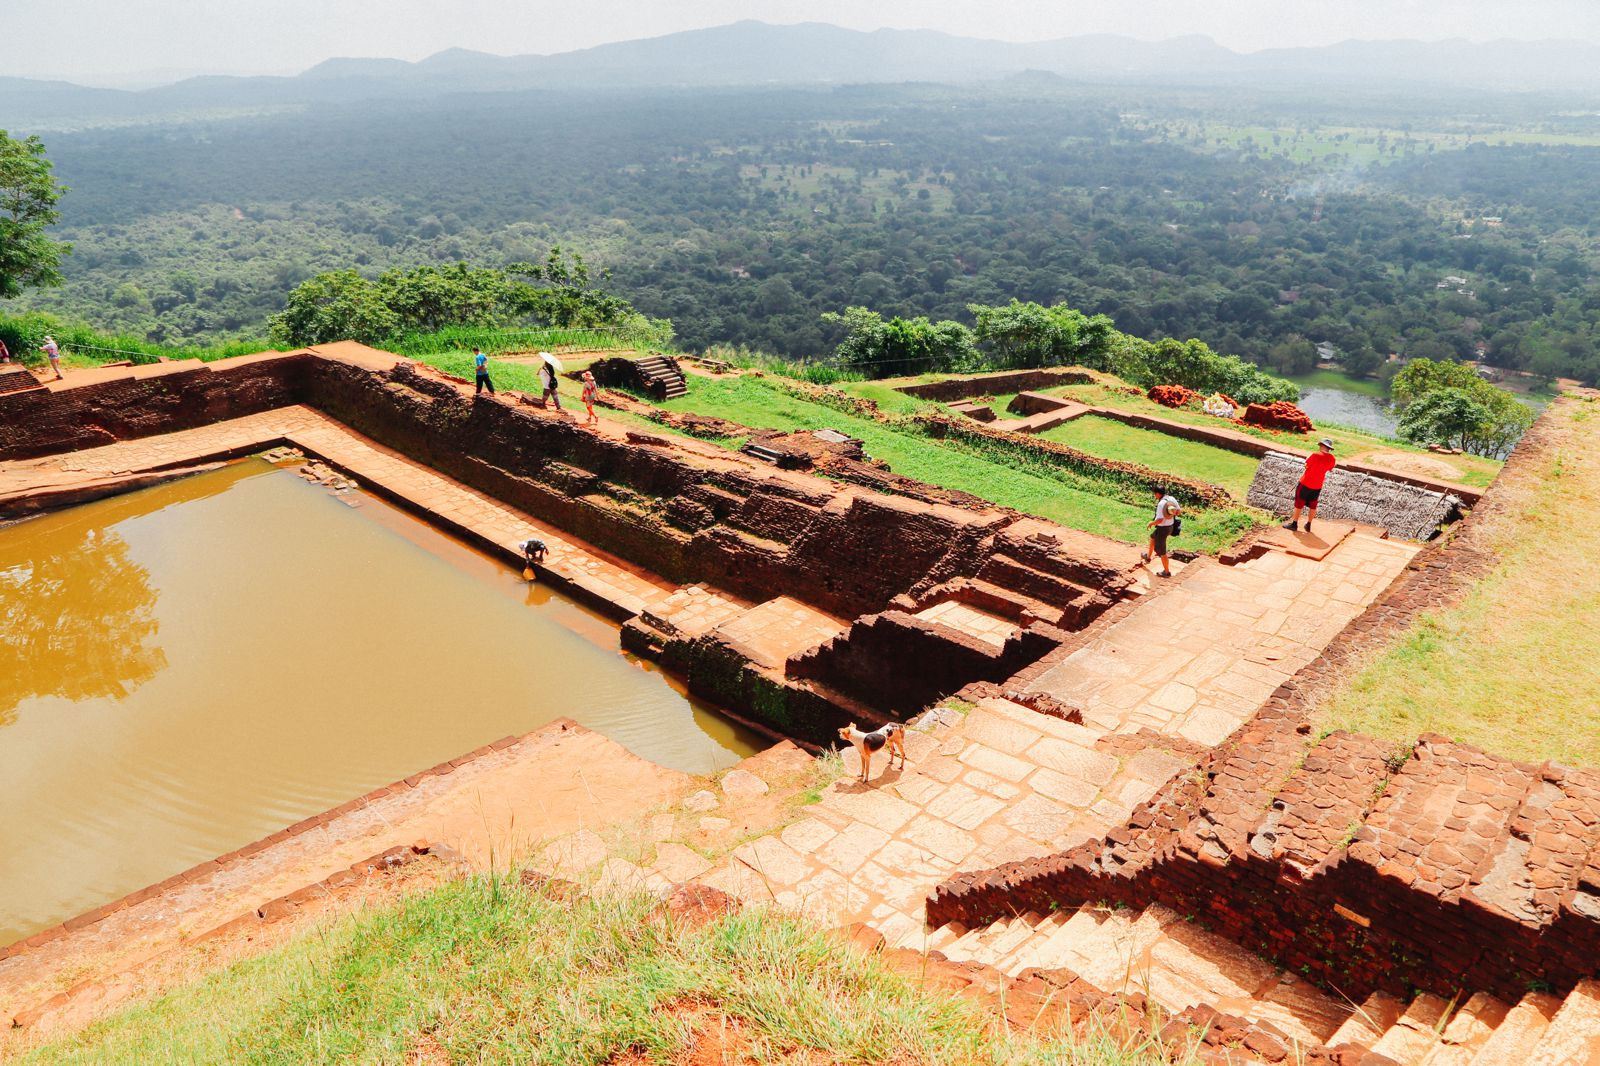 The Complete Guide To Climbing Sri Lanka's UNESCO World Heritage Site Of Sigiriya - Lion Rock (45)